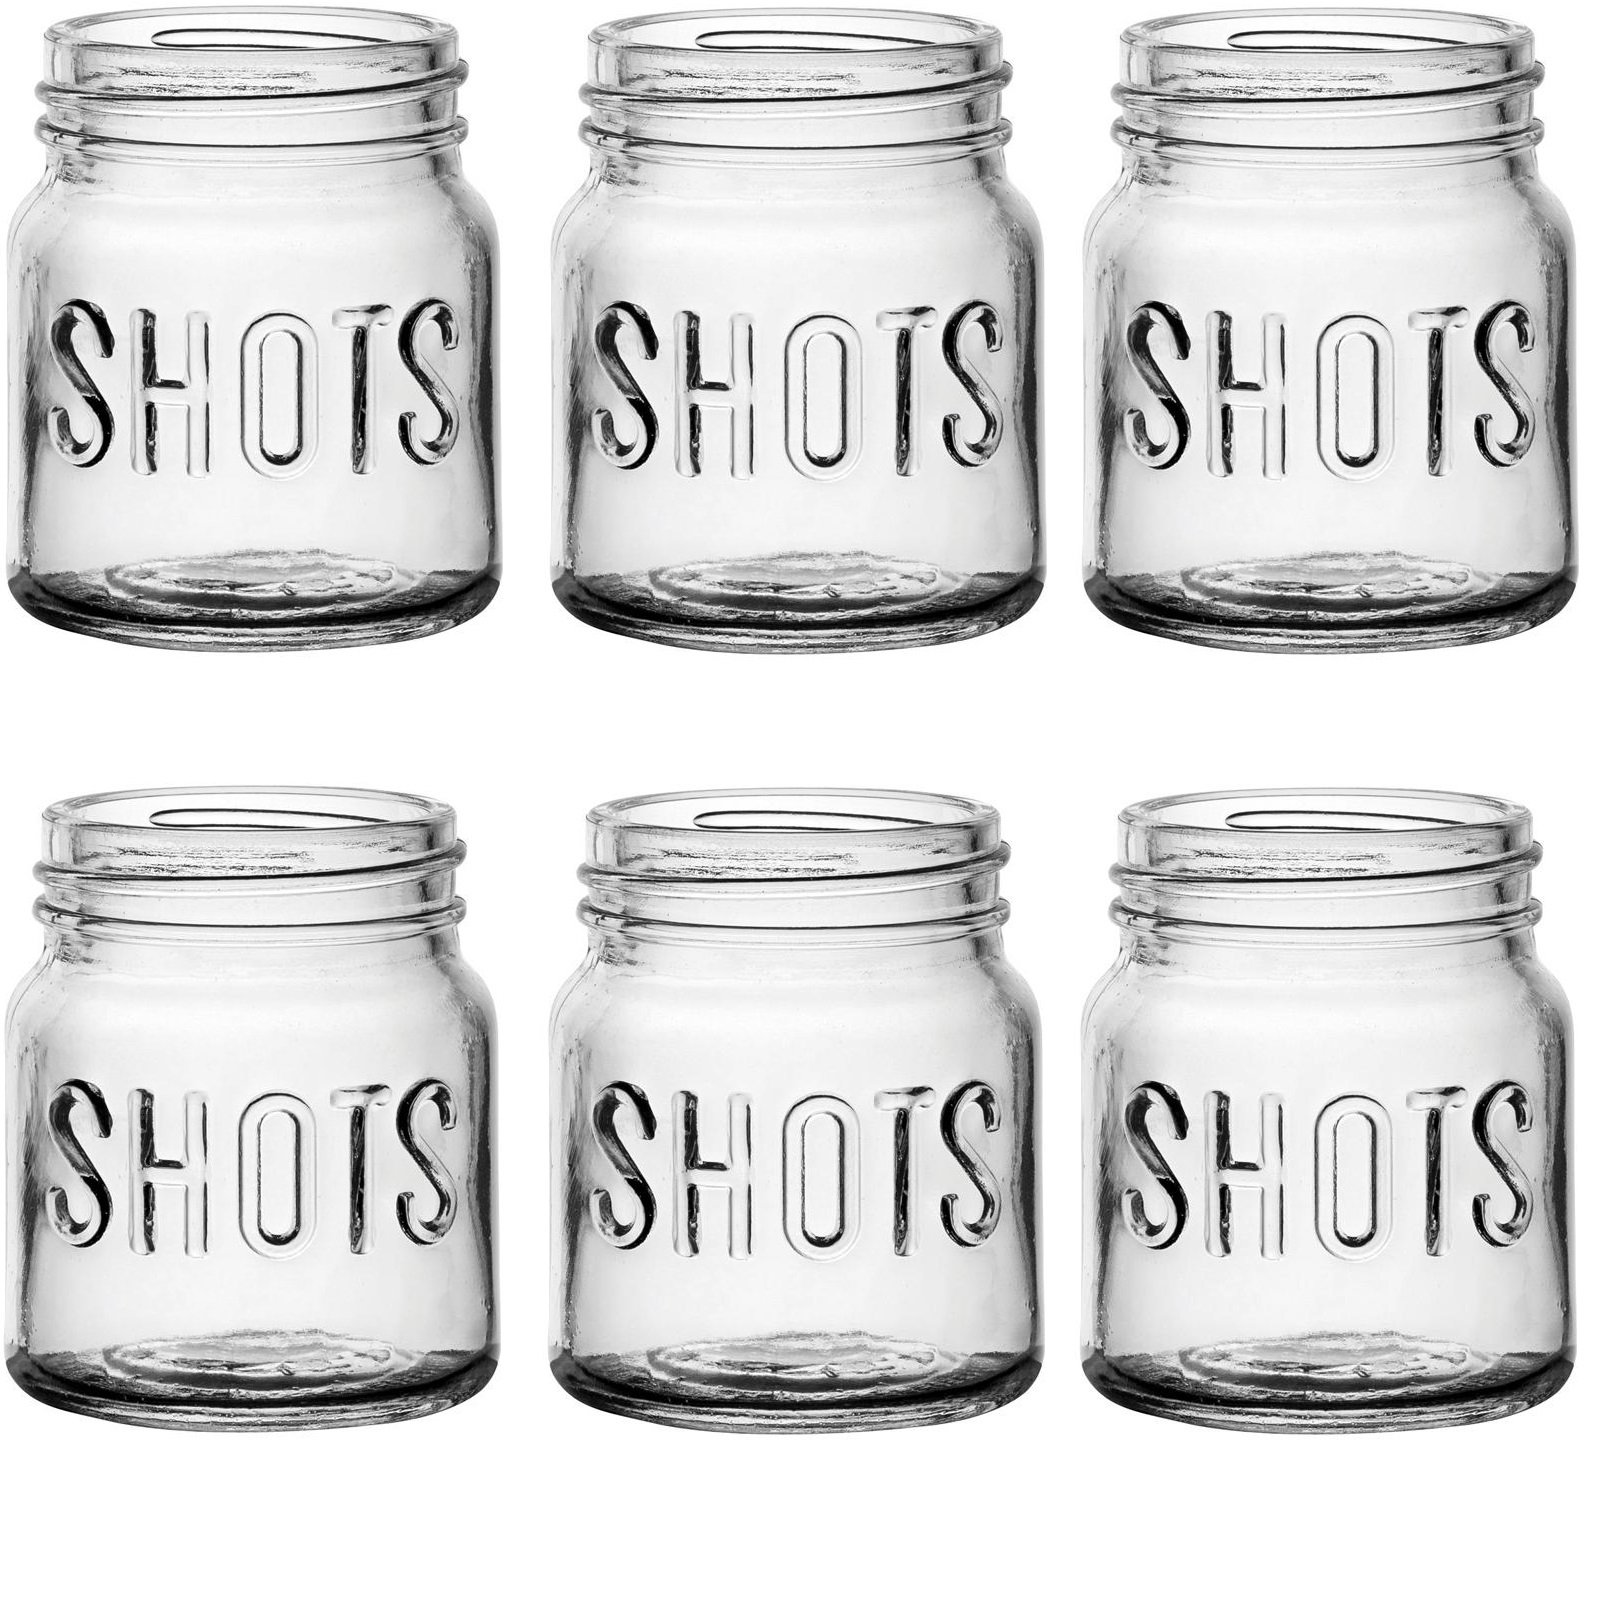 1.7 oz Set of 6 Jello Cups Clear Circleware Roadhouse Heavy Base Whiskey Shot Glasses with Handle Fun Party Beer Mug Shape Entertainment Beverage Drinking Glassware for Bar Liquor Decor